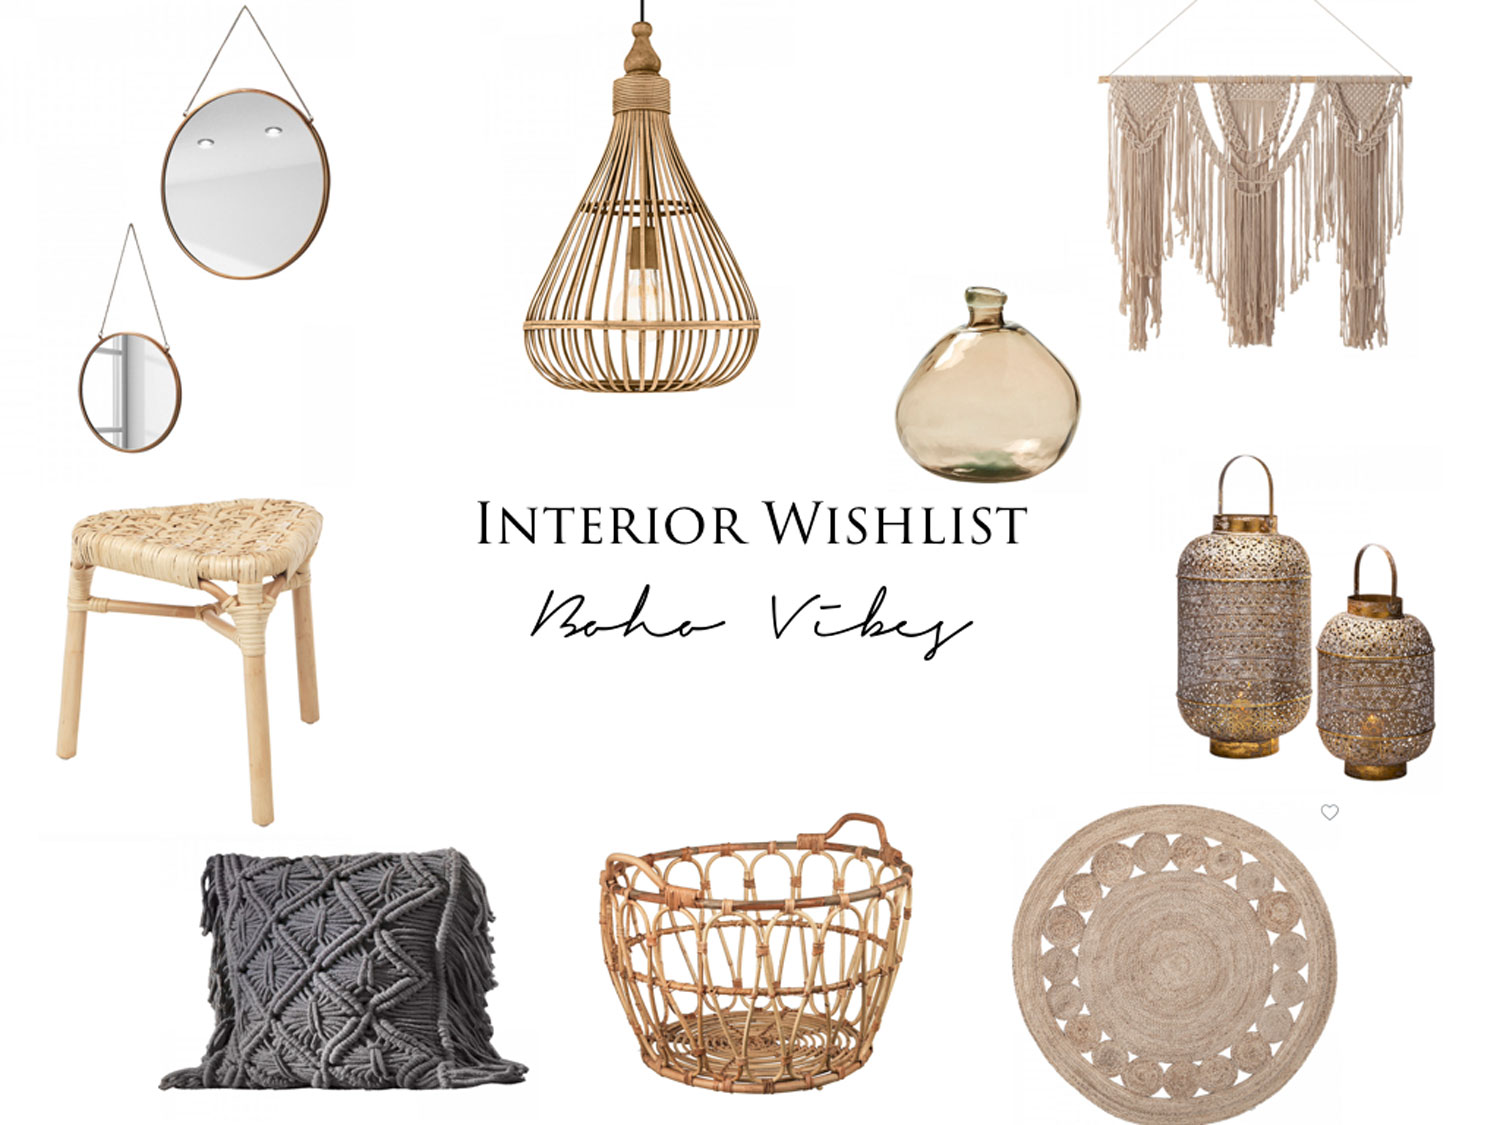 Interior Wishlist – Boho Vibes